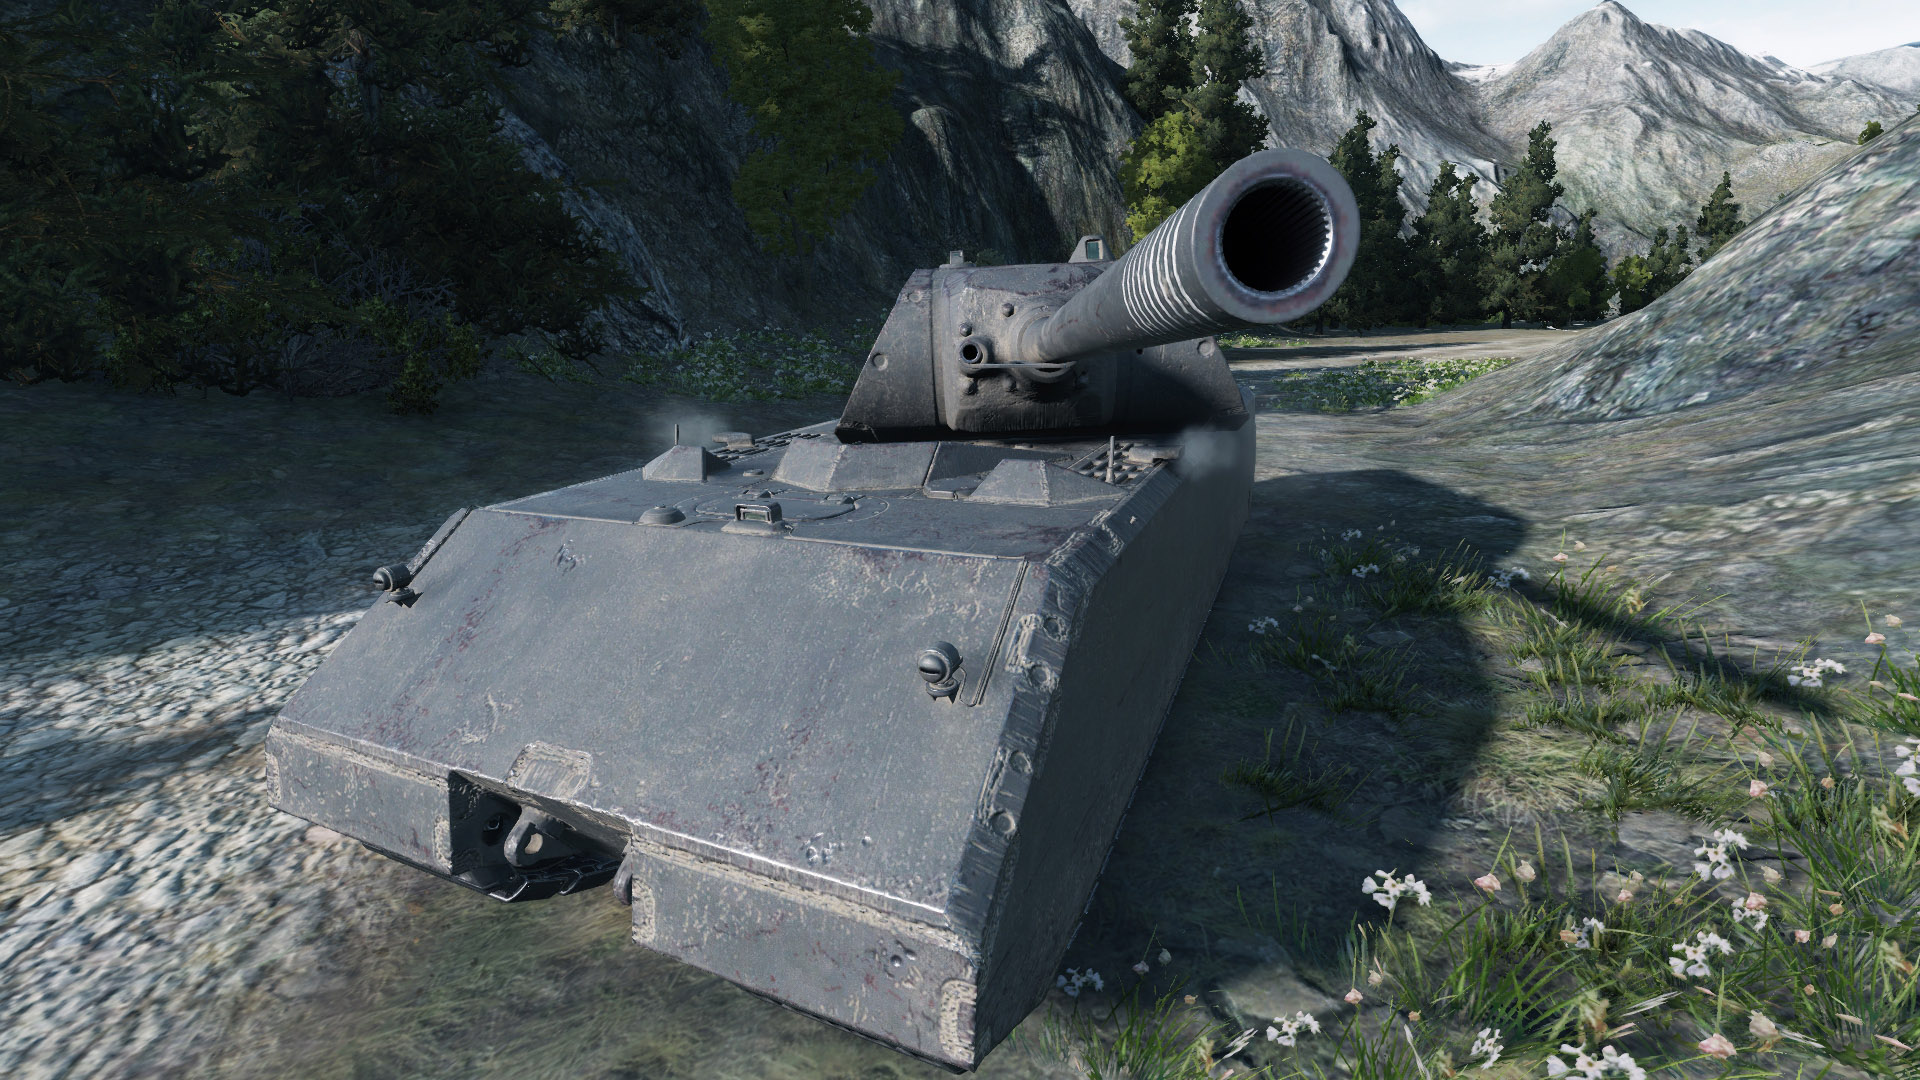 ... in regards to its power level, with newer players still asking how to  destroy the Maus, so Wargaming have deemed it necessary to slightly nerf  some ...